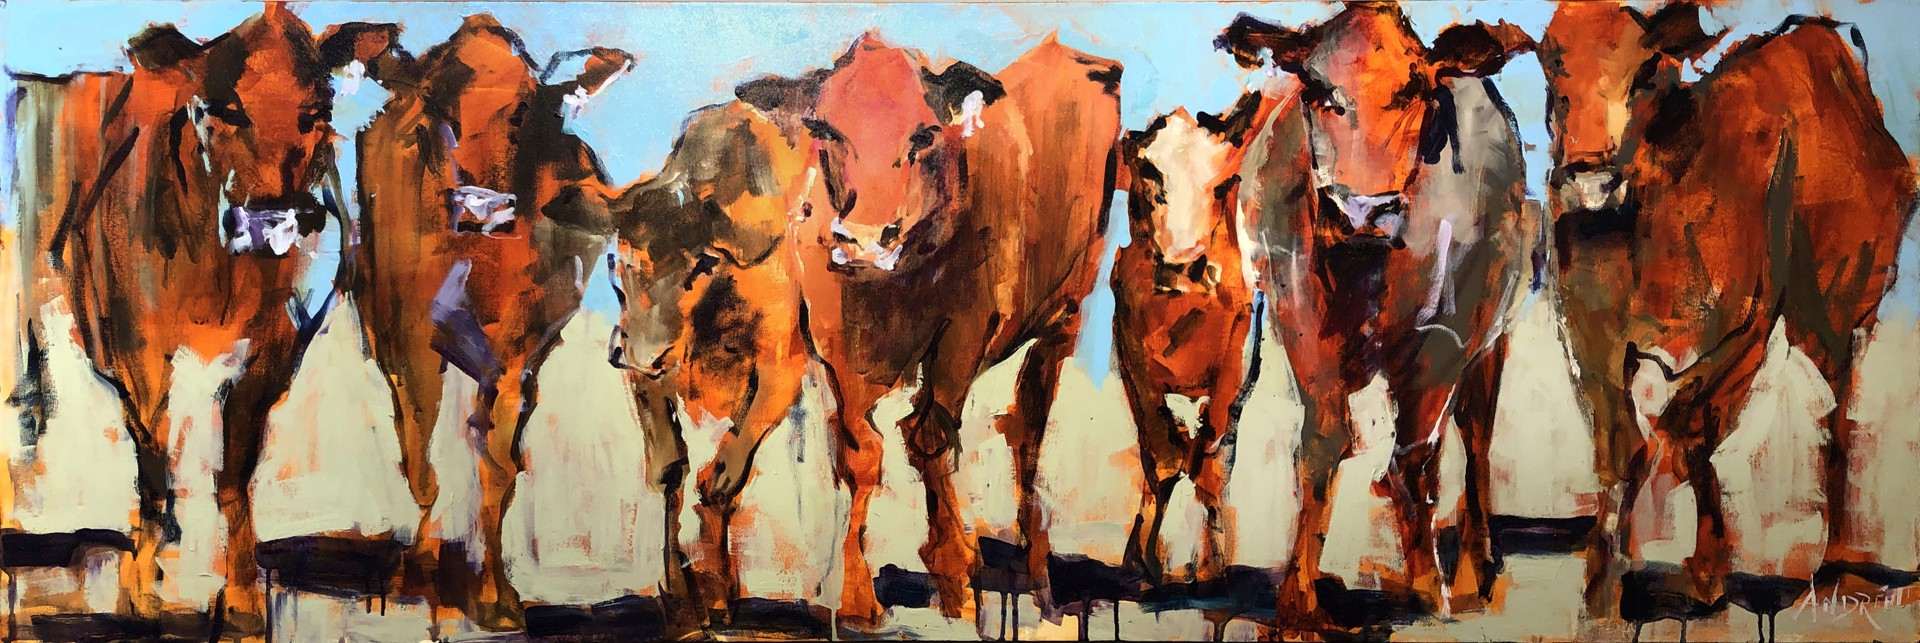 Where the Pasture's Greener by Andrée Hudson